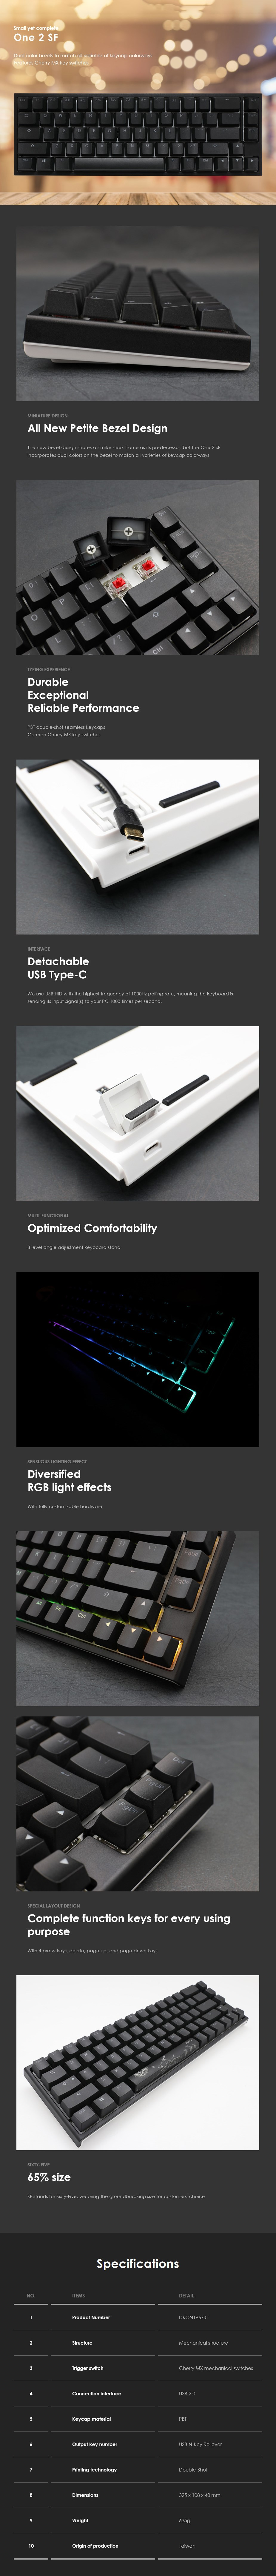 Ducky One 2 SF RGB Mechanical Keyboard - Cherry MX Silver - Overview 1